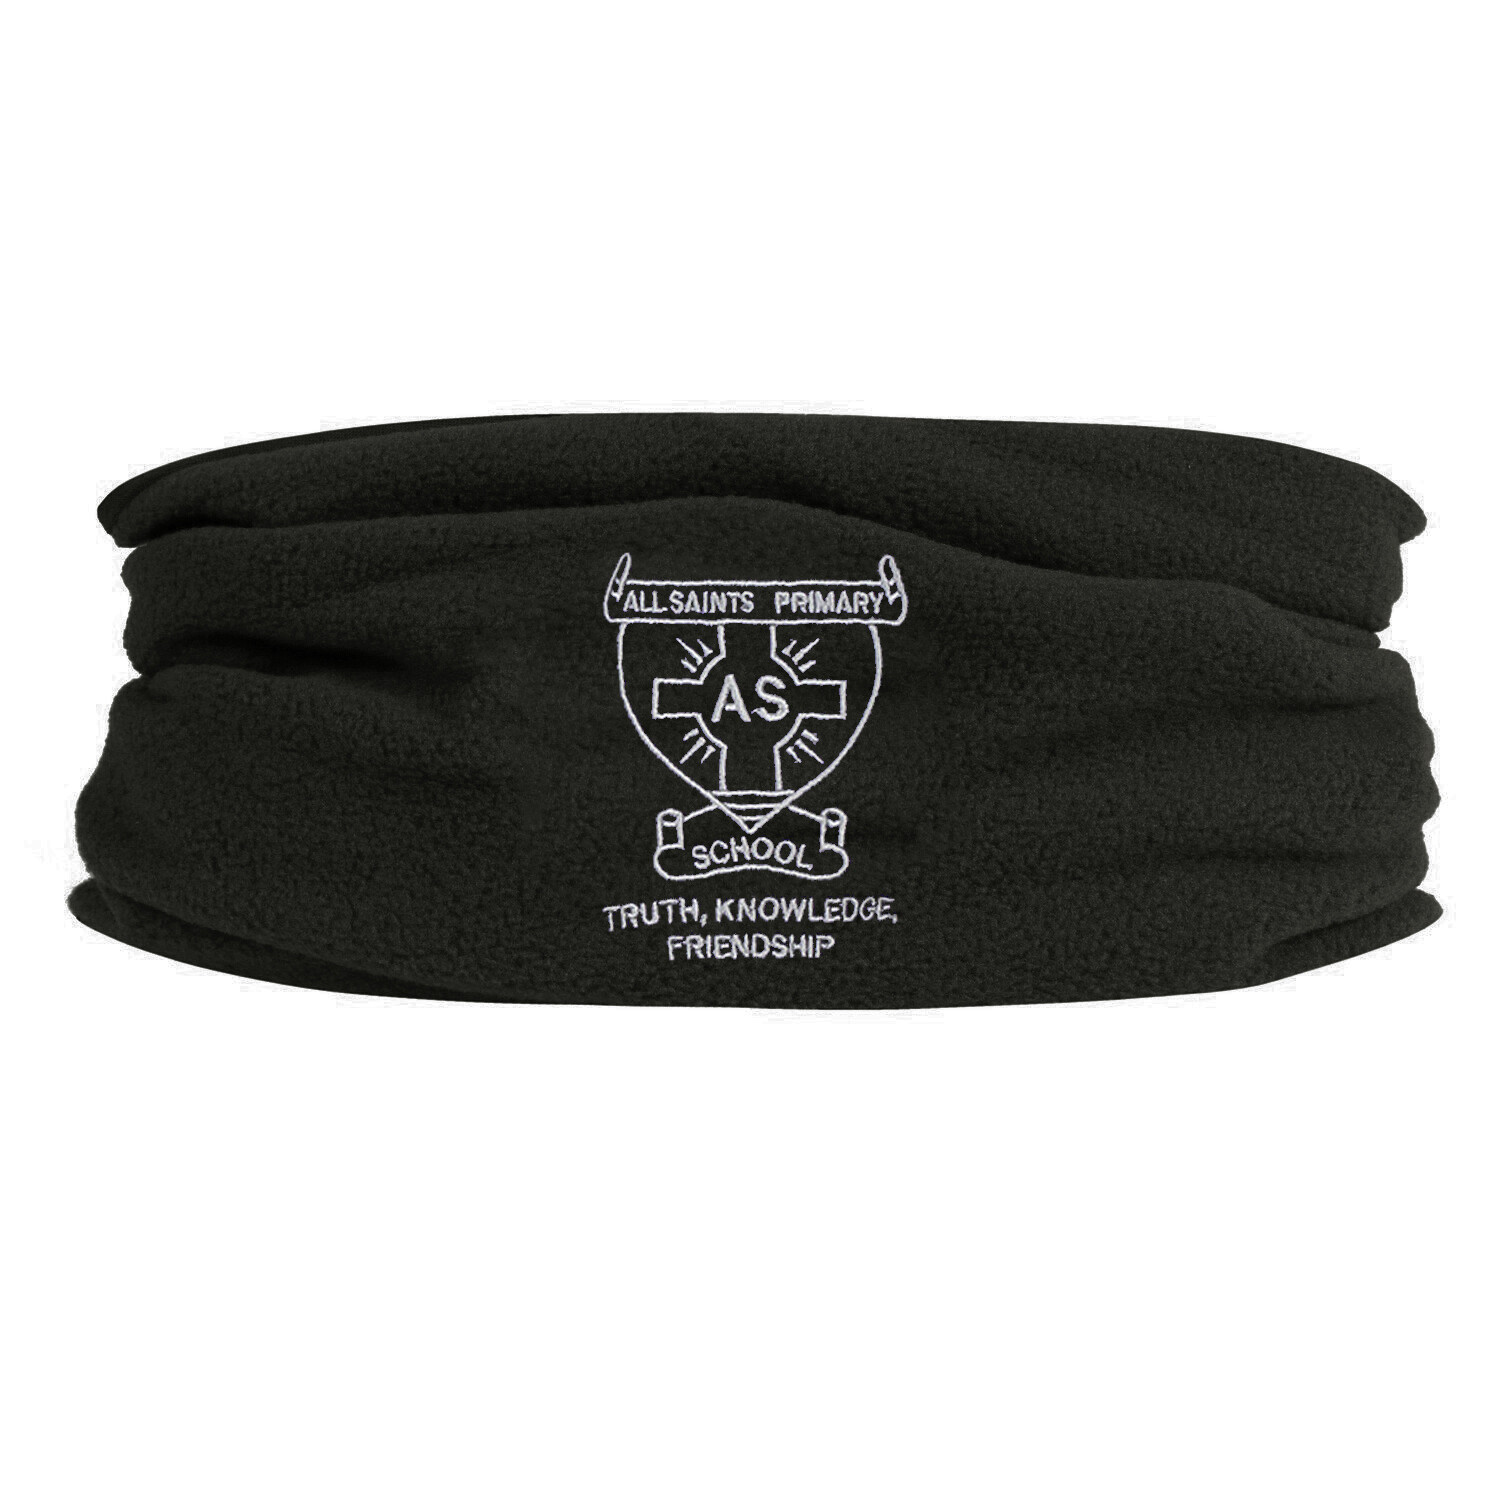 All Saints Primary Staff Snood (RCSB920)